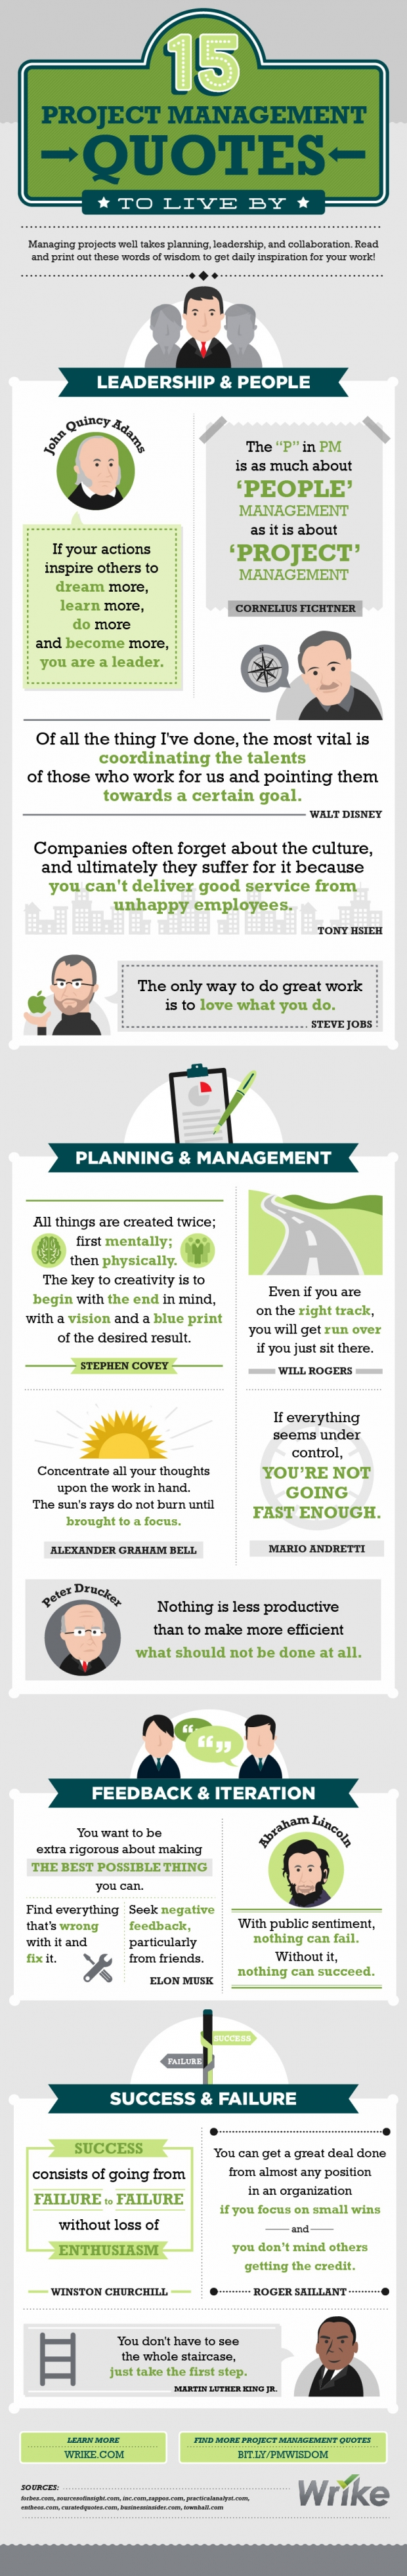 project-management-quotes-infographic